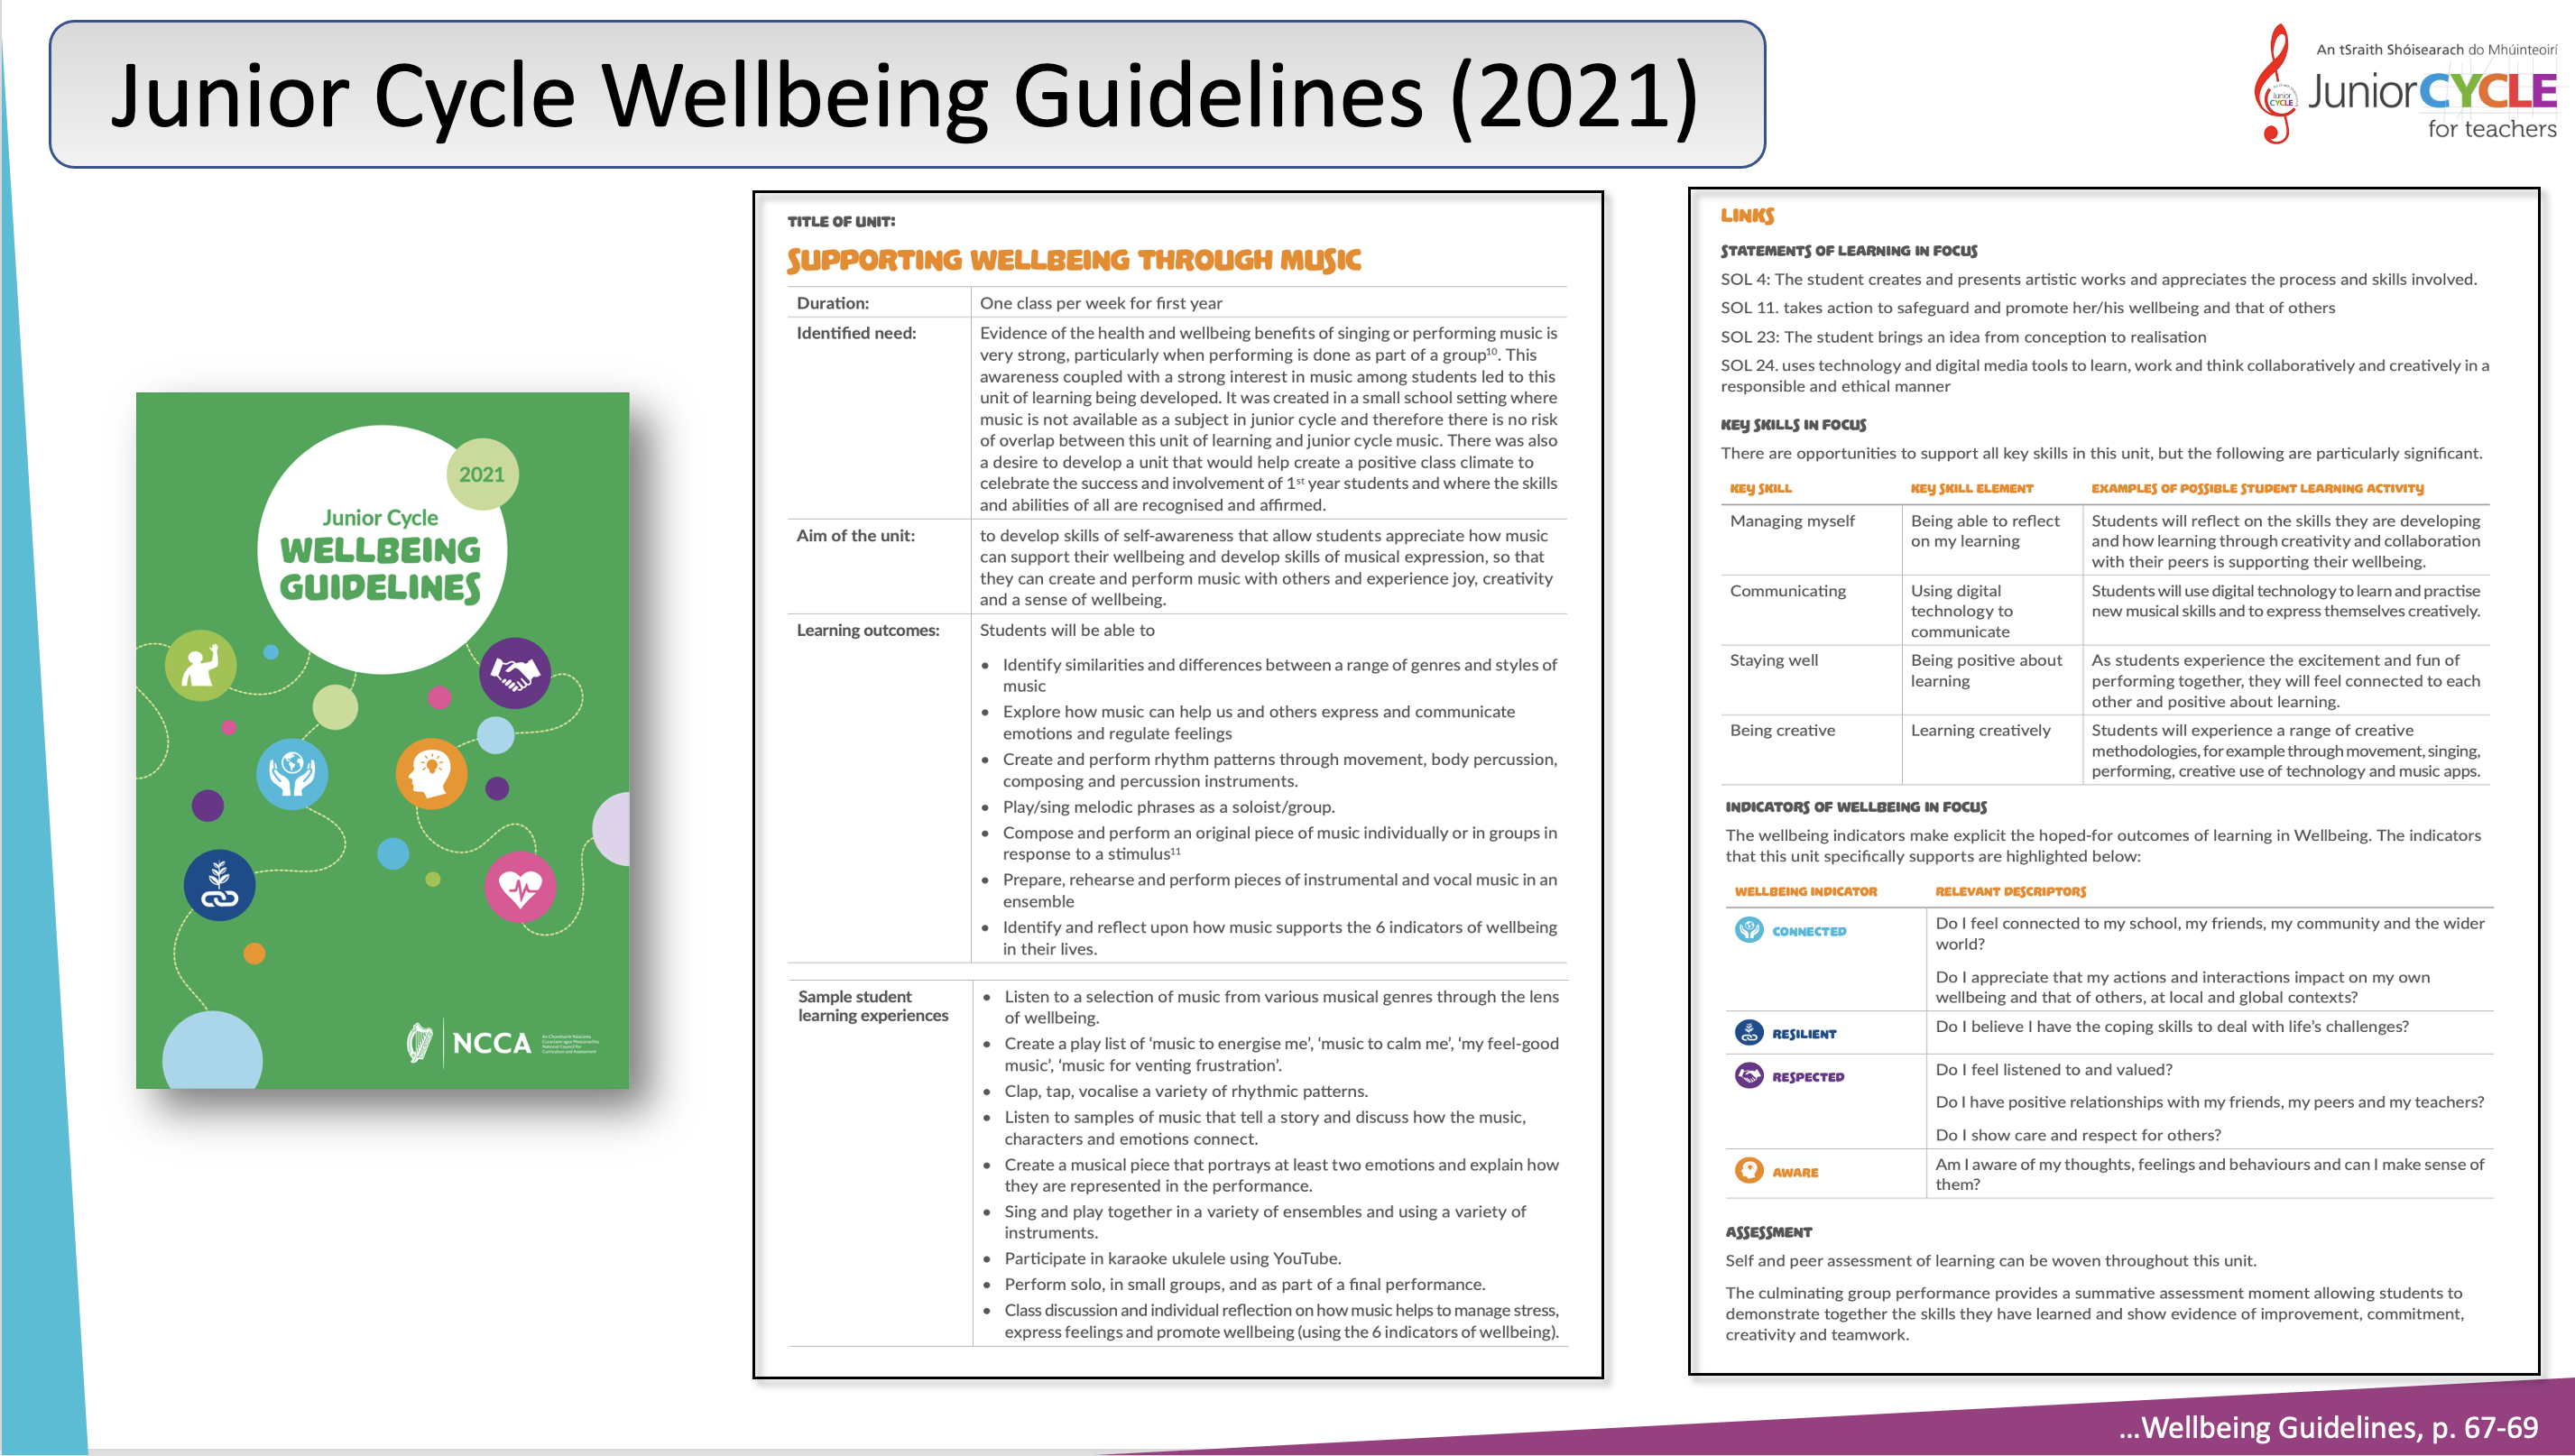 Wellbeing Guidelines 2021 and Support Wellbeing Through Music